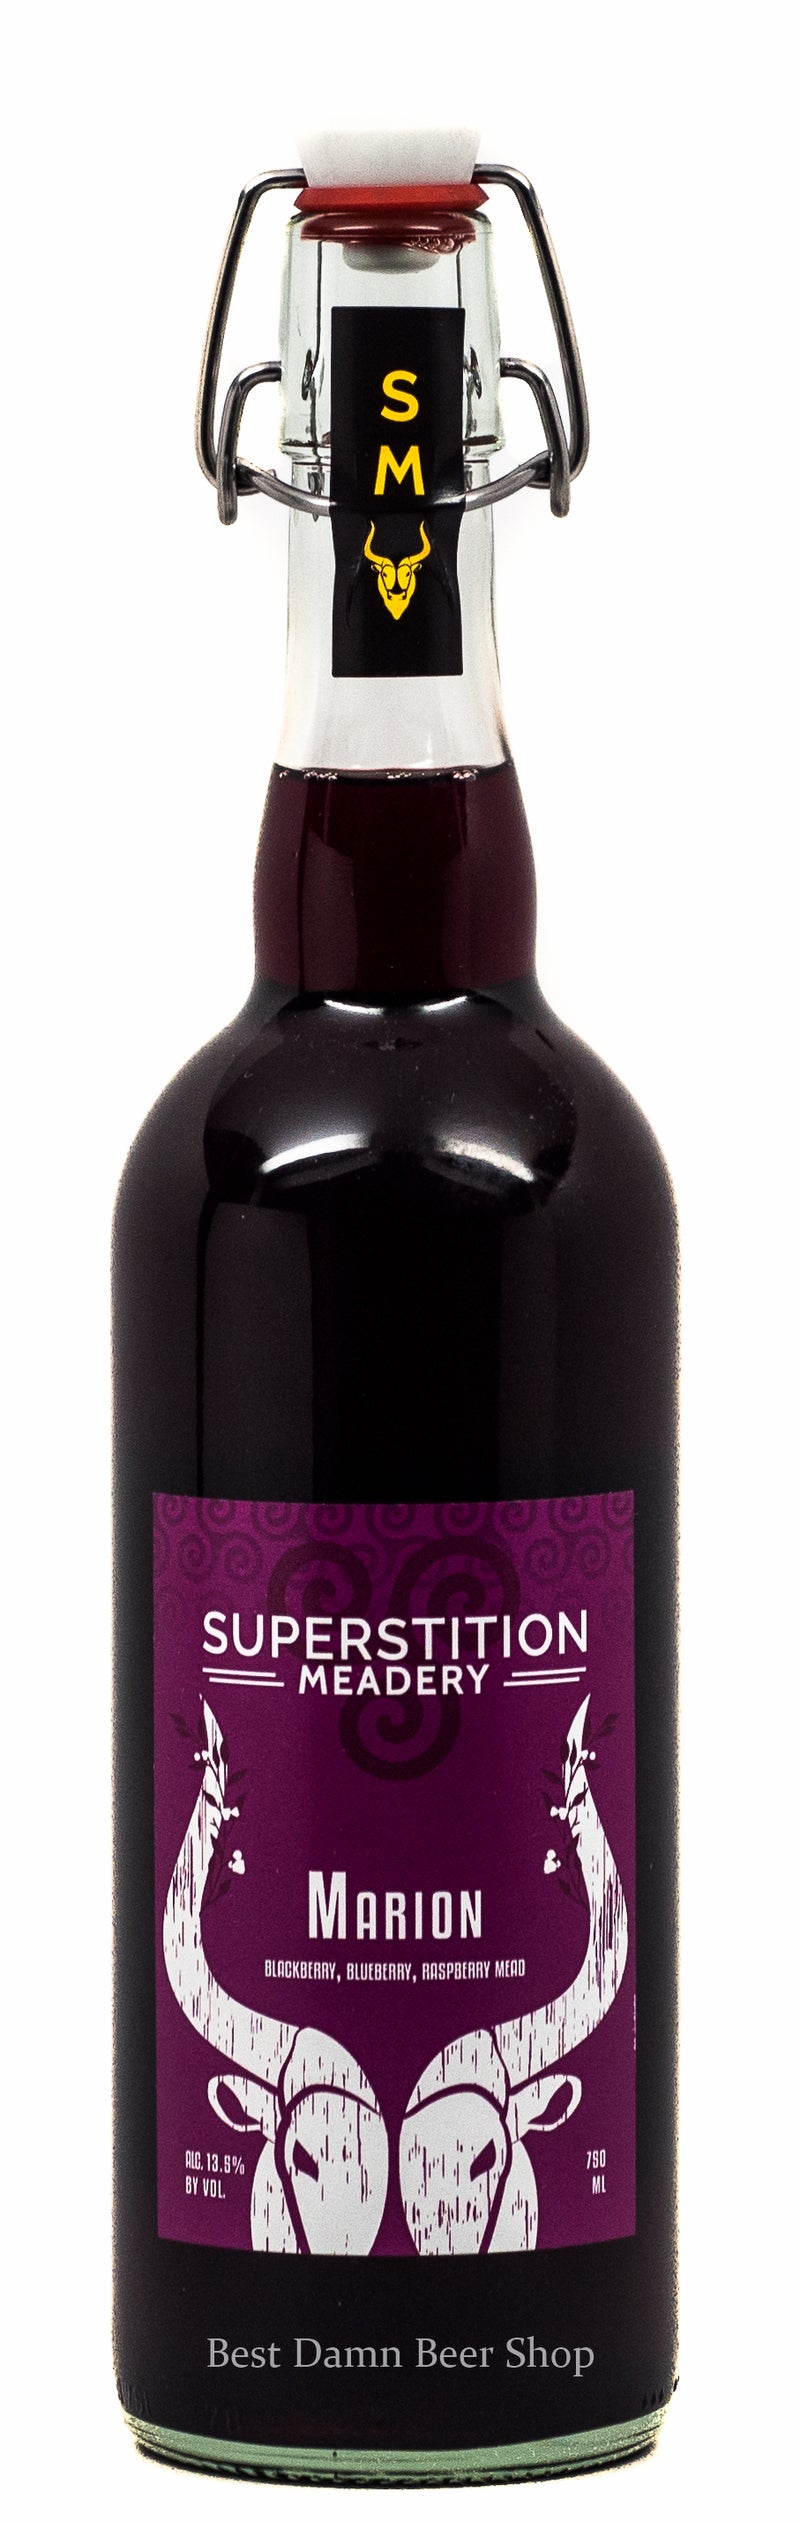 Superstition Meadery Marion 750ml